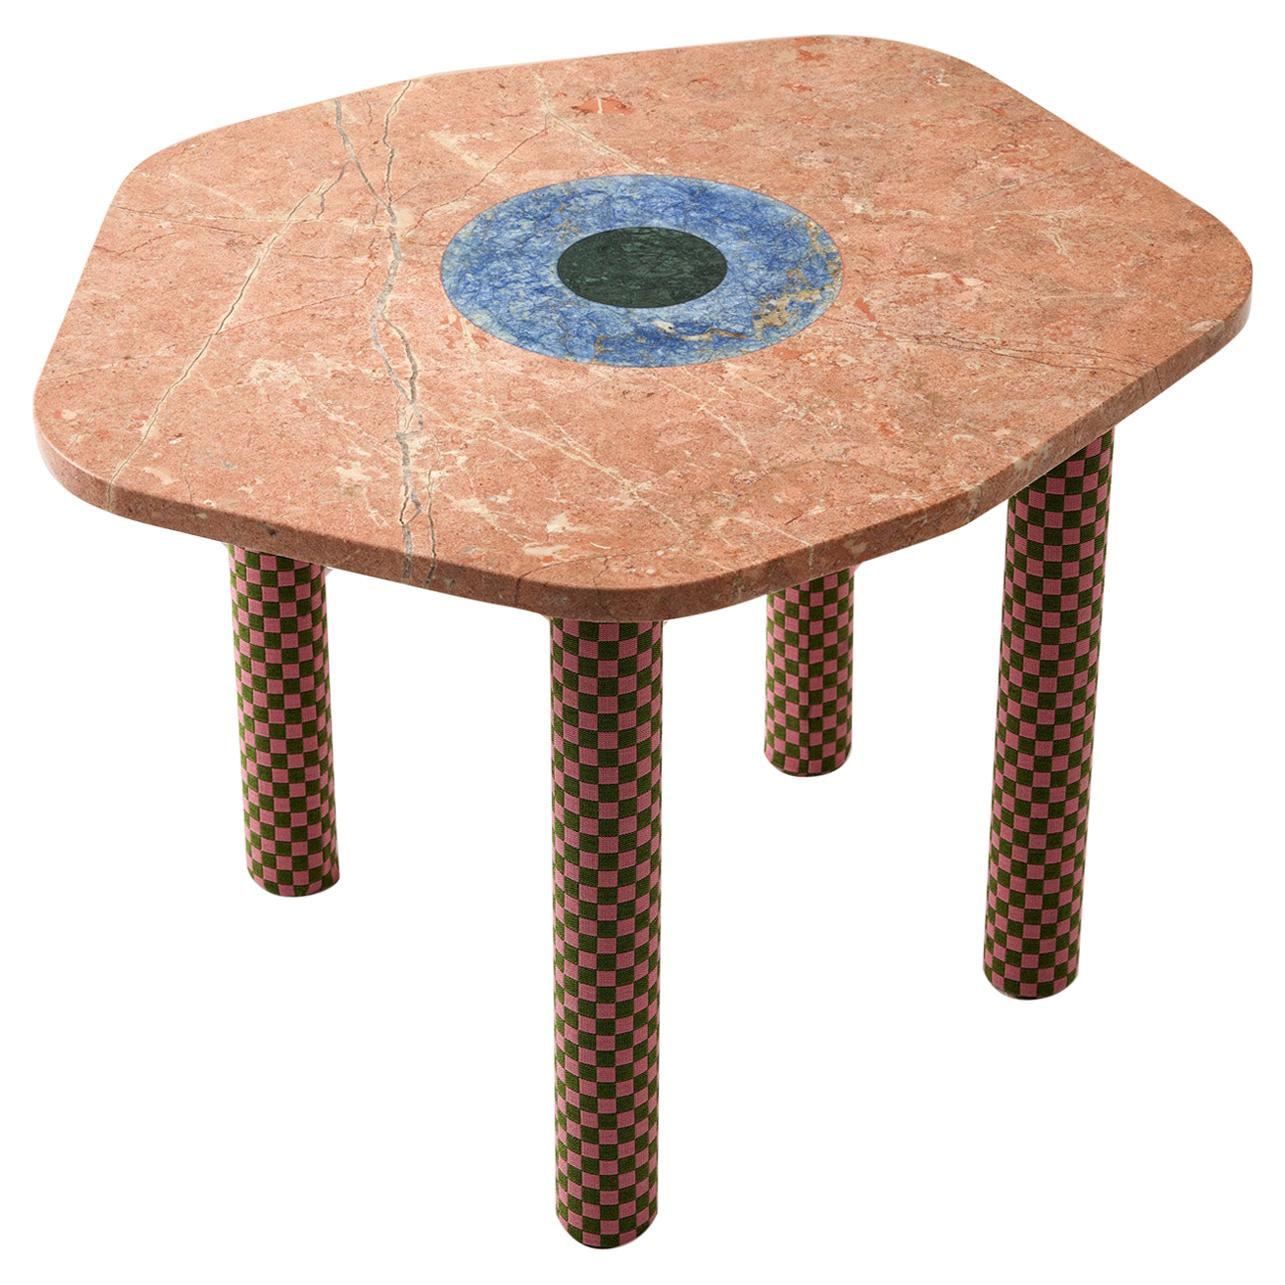 Abide Marble Side Table in Pink